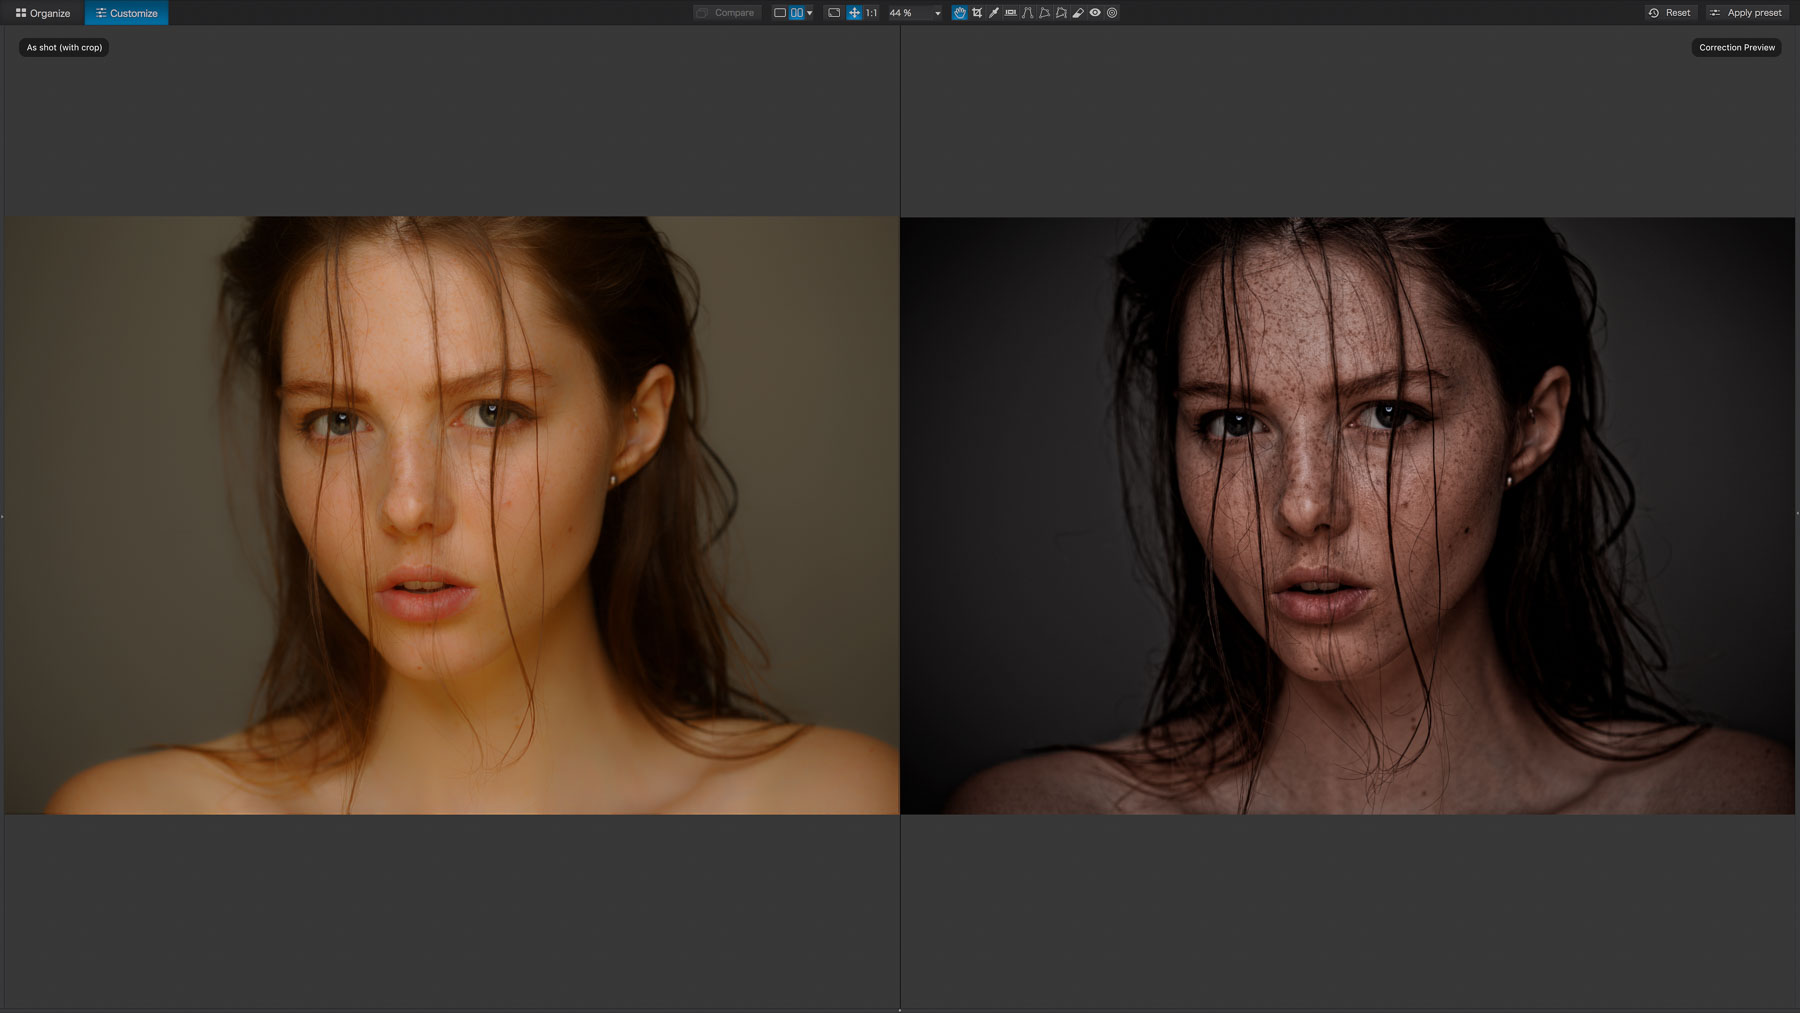 hdr DxO OpticsPro presets - Dragan Style collection from PixaFOTO : Before-After